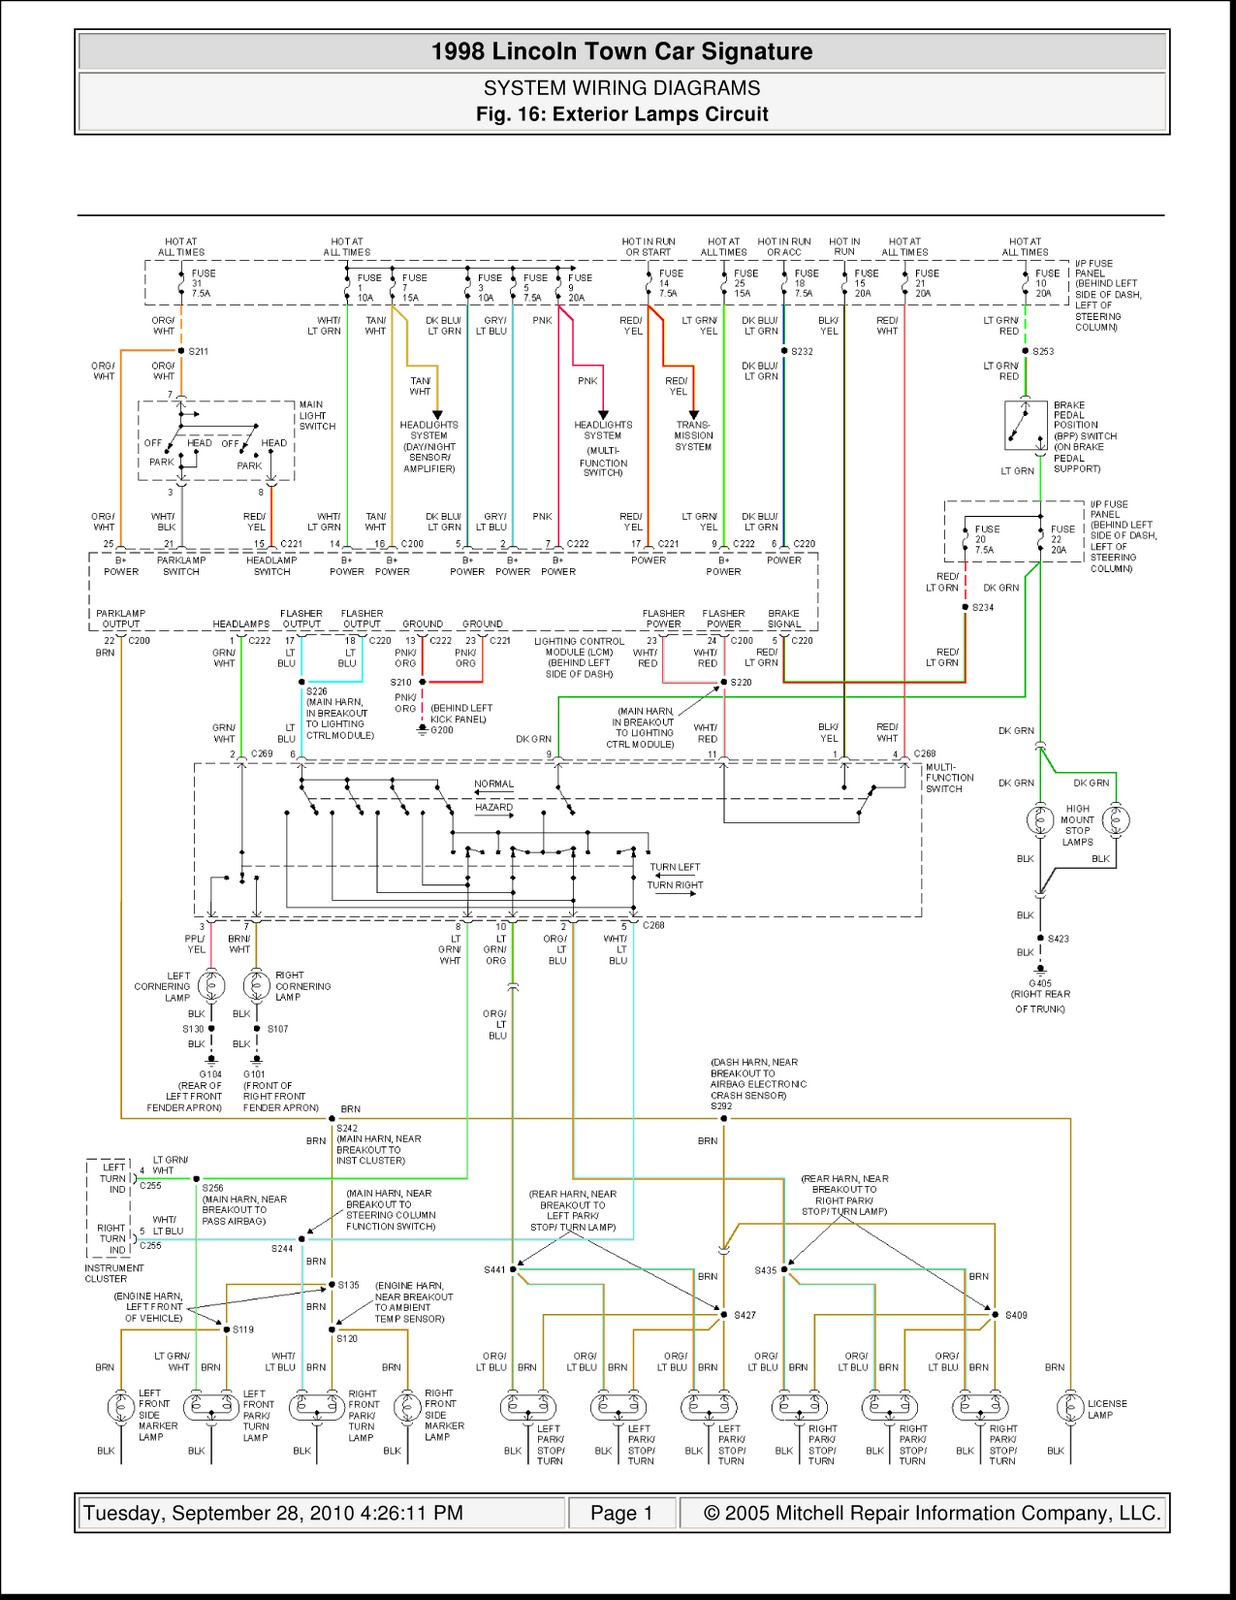 1998 lincoln town car signature system wiring diagrams ... automobile wire diagram #10